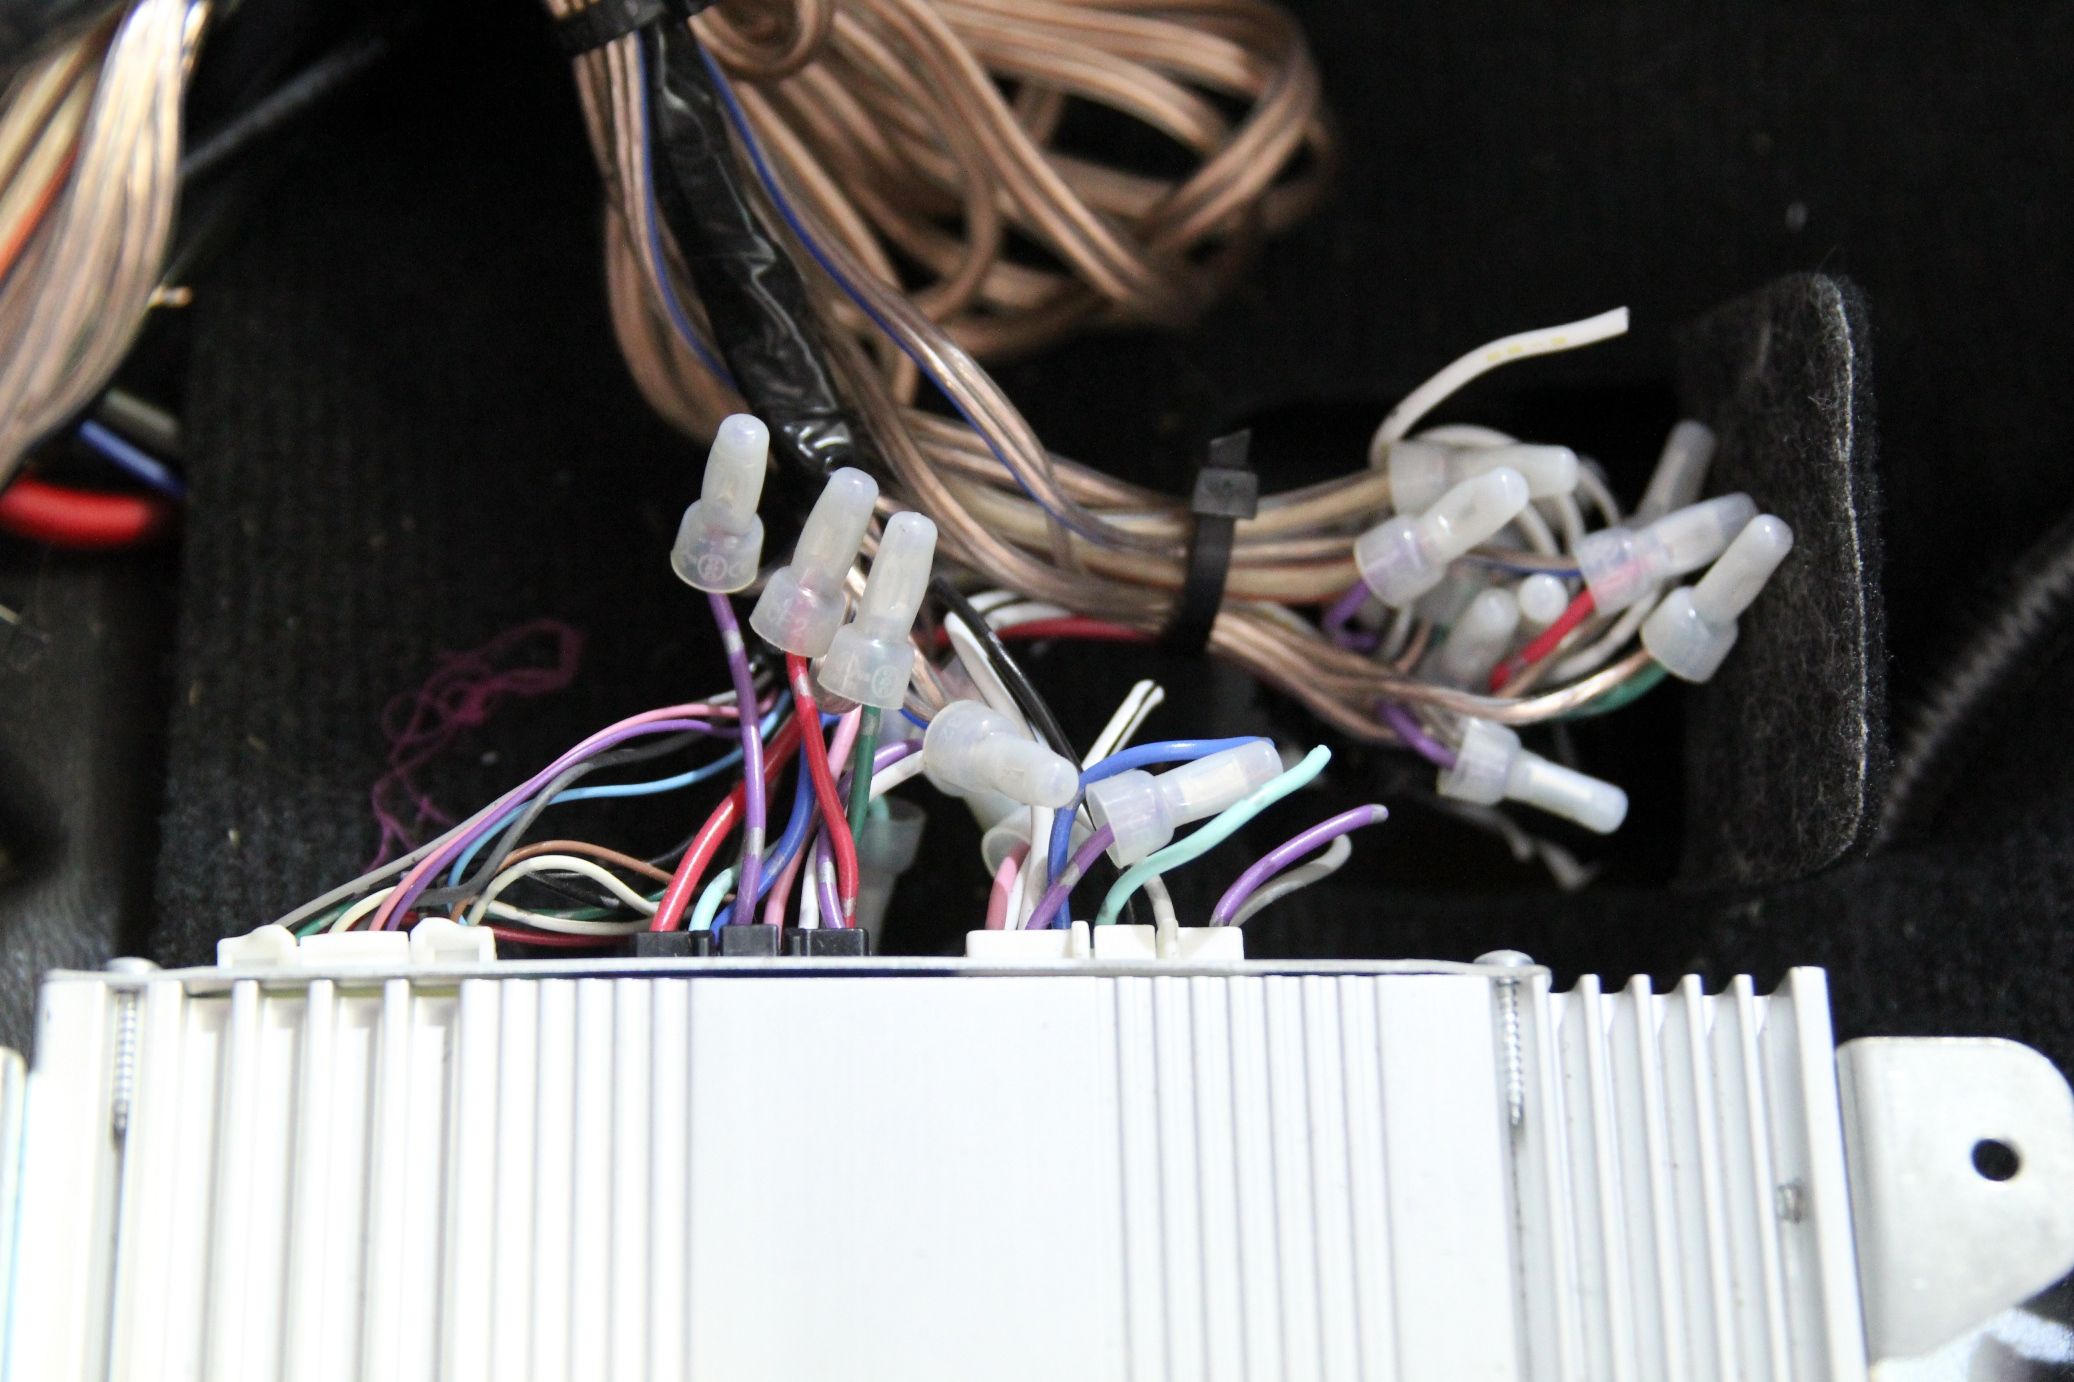 Toyota Tundra JBL Wiring Harness Repair Before Picture 6?resize\\\\\\\\\\\\\\\=647%2C431 wiring harness for lighted dee fuel pump wiring harness diagram  at crackthecode.co